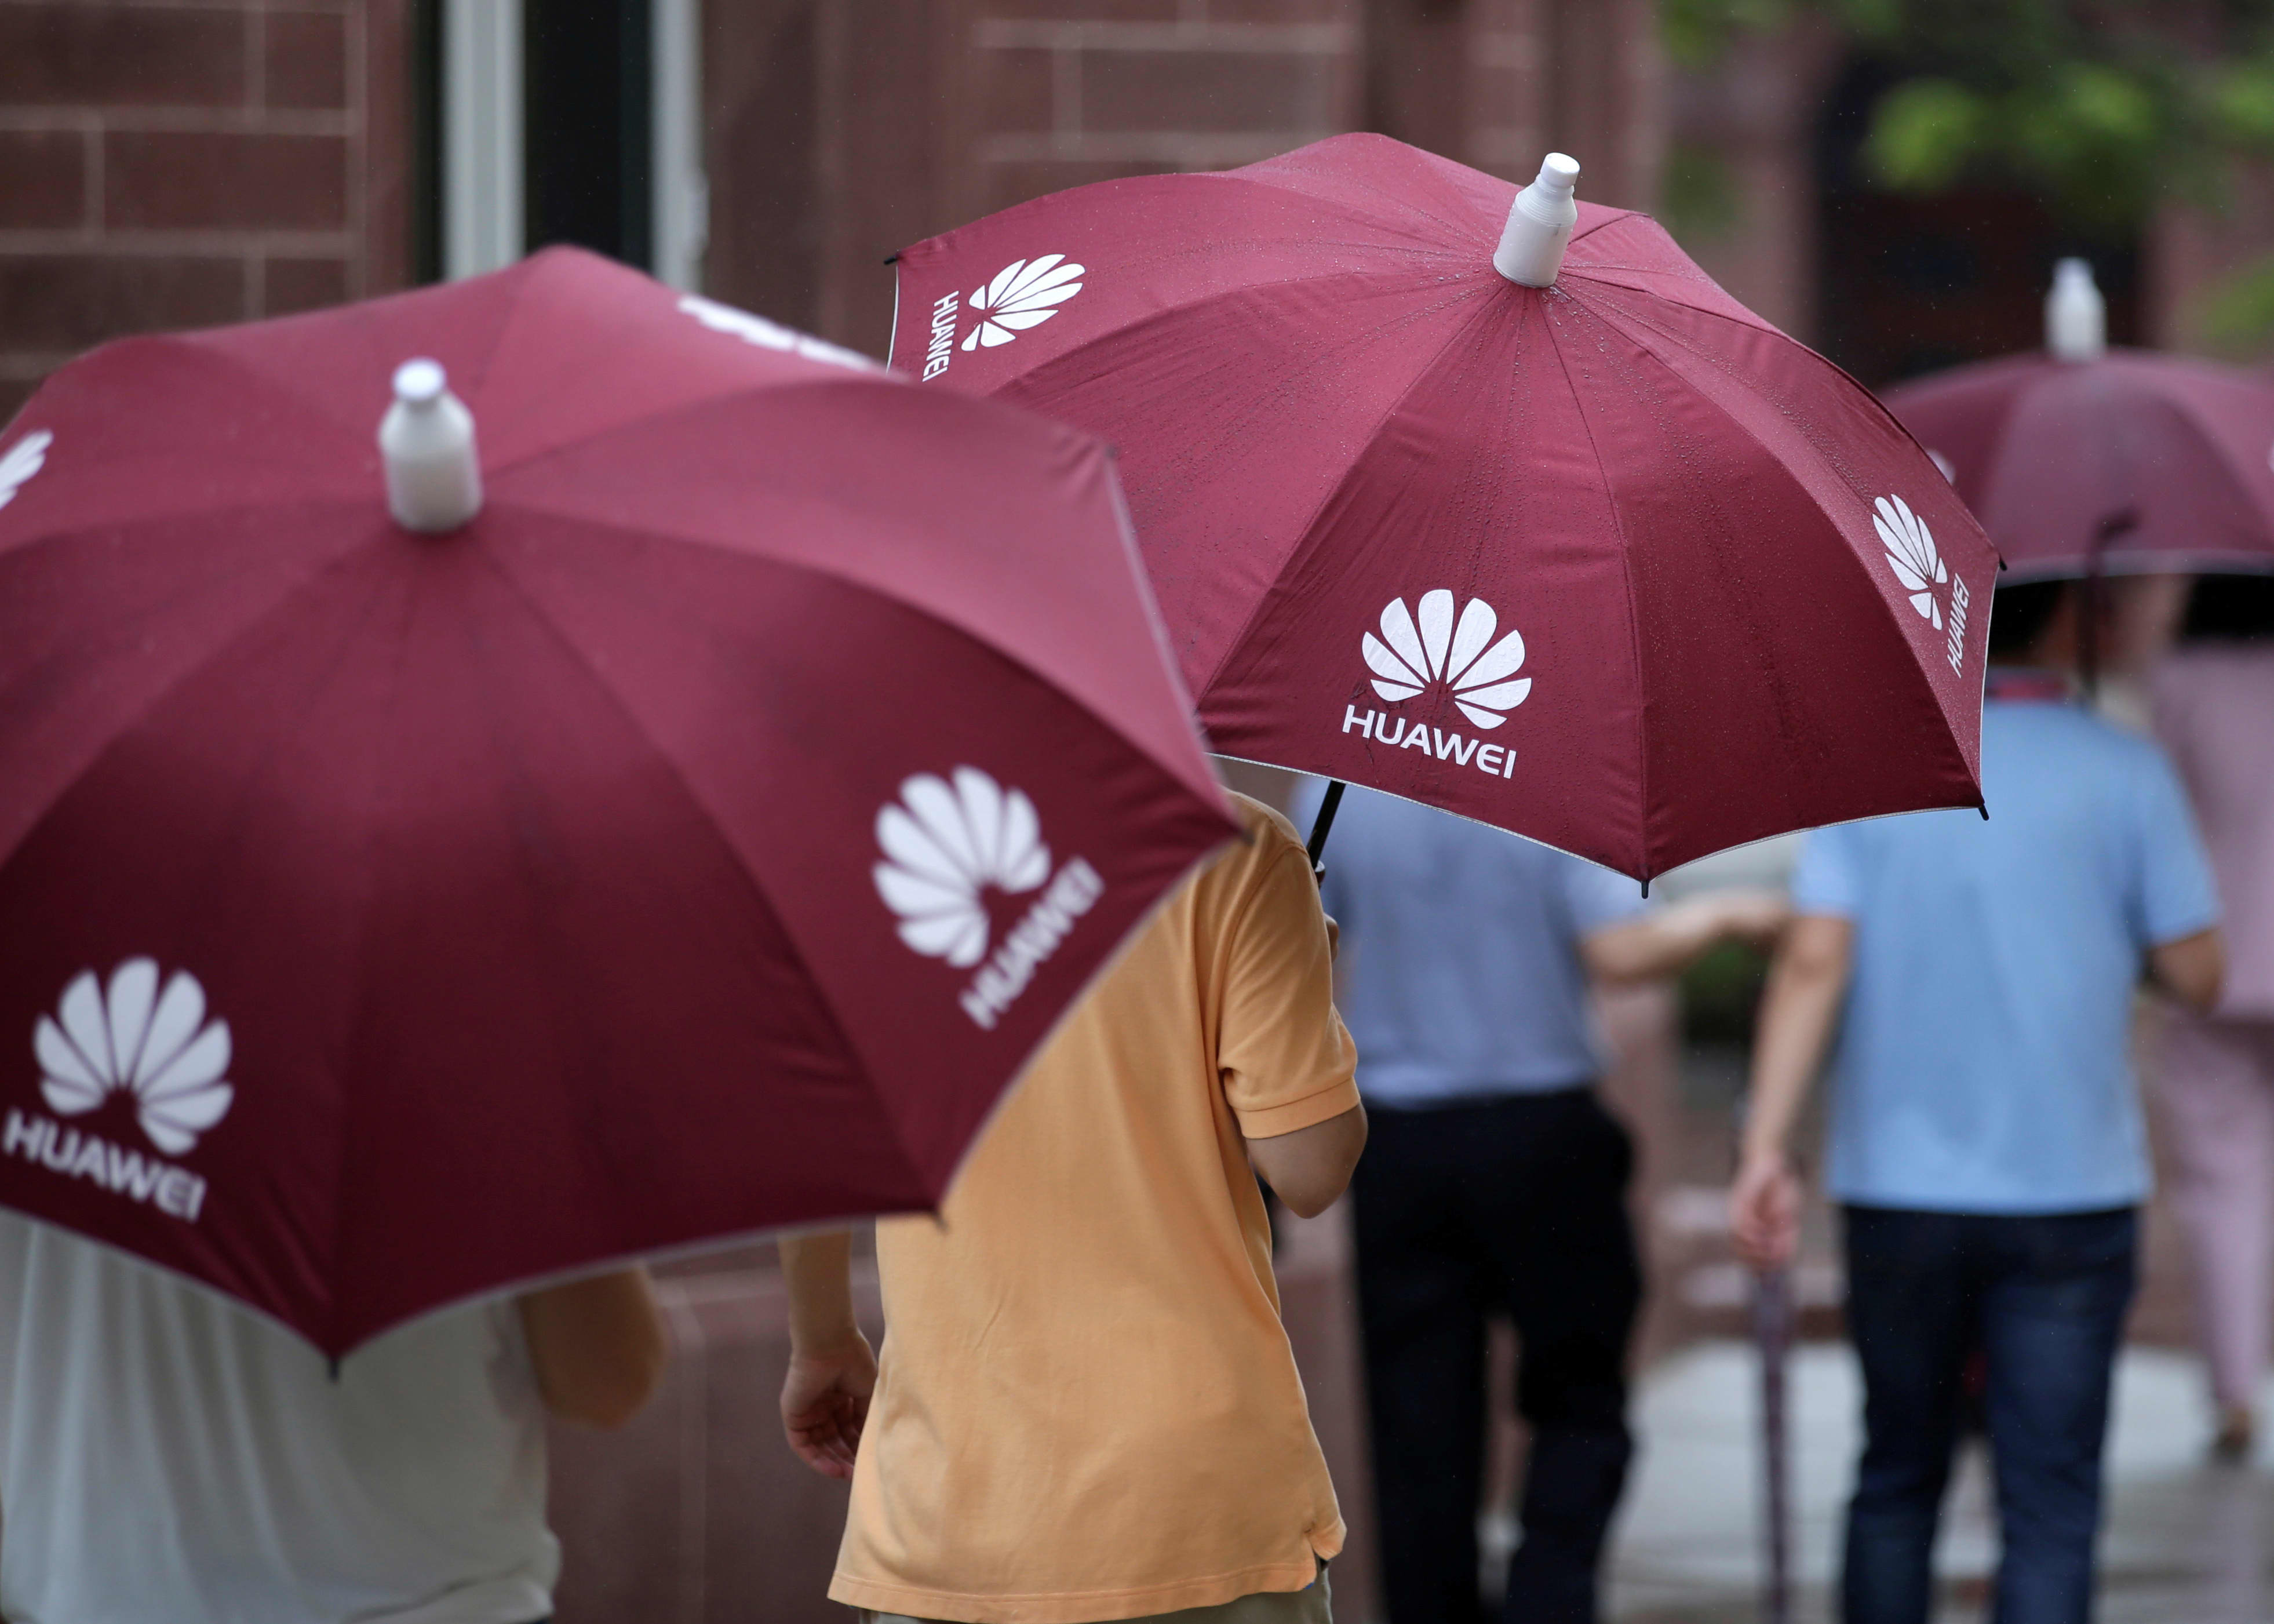 Huawei protests FCC actions to block it in the U.S. on national security grounds